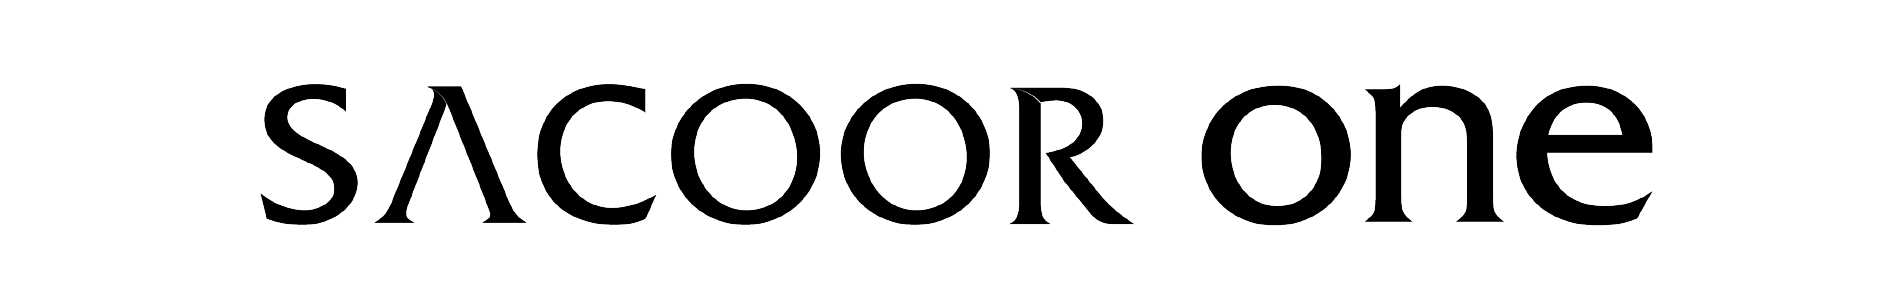 sacoor_one_logo.png